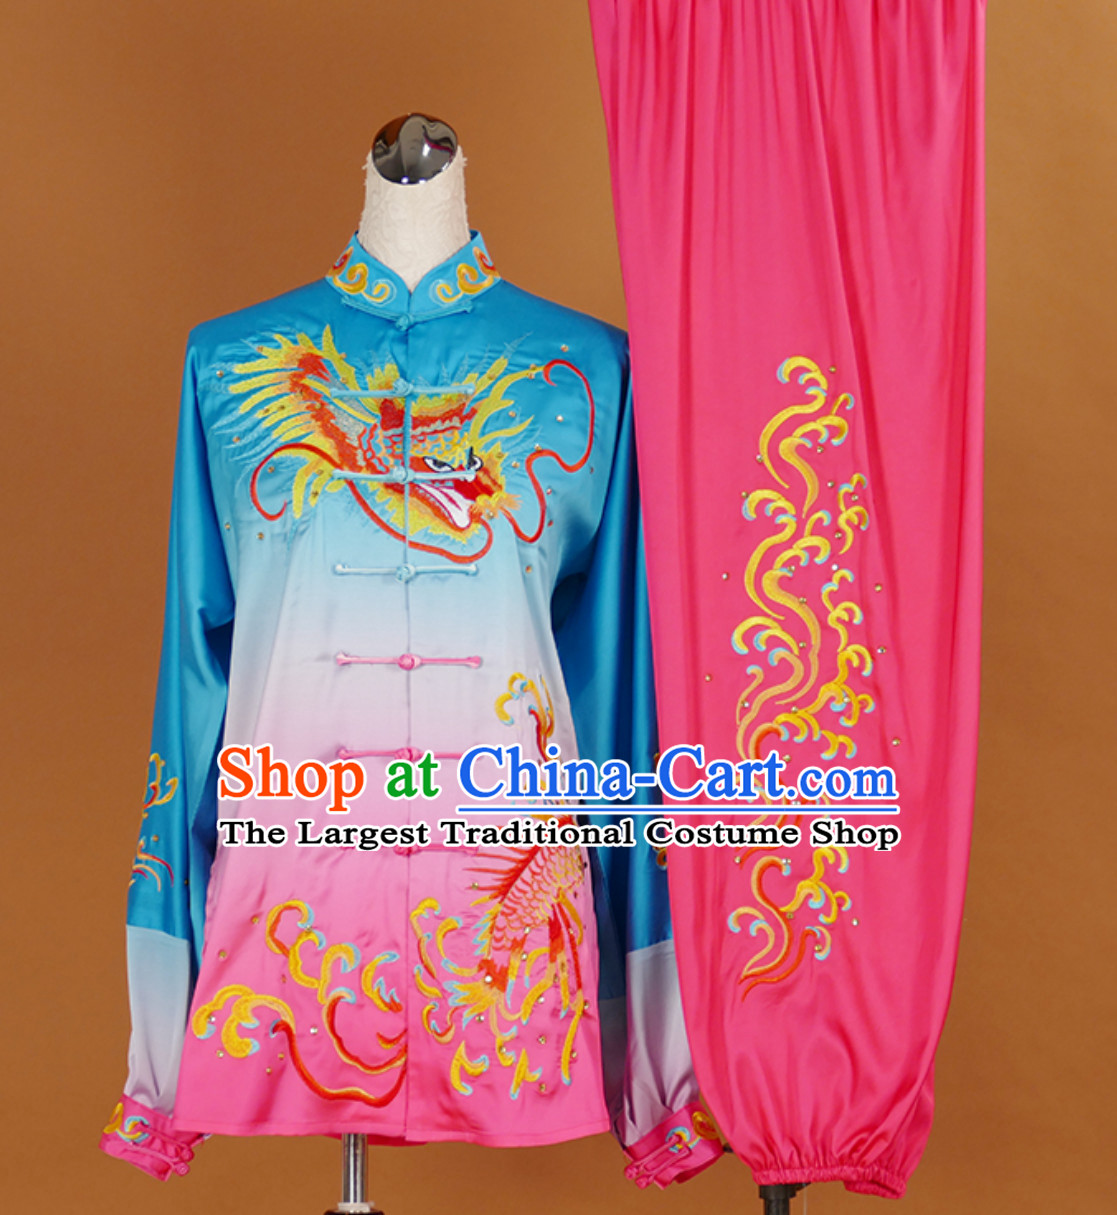 Traditional Kung Fu Tai Ji Clothing Suits Stage Performance Competition Full Set